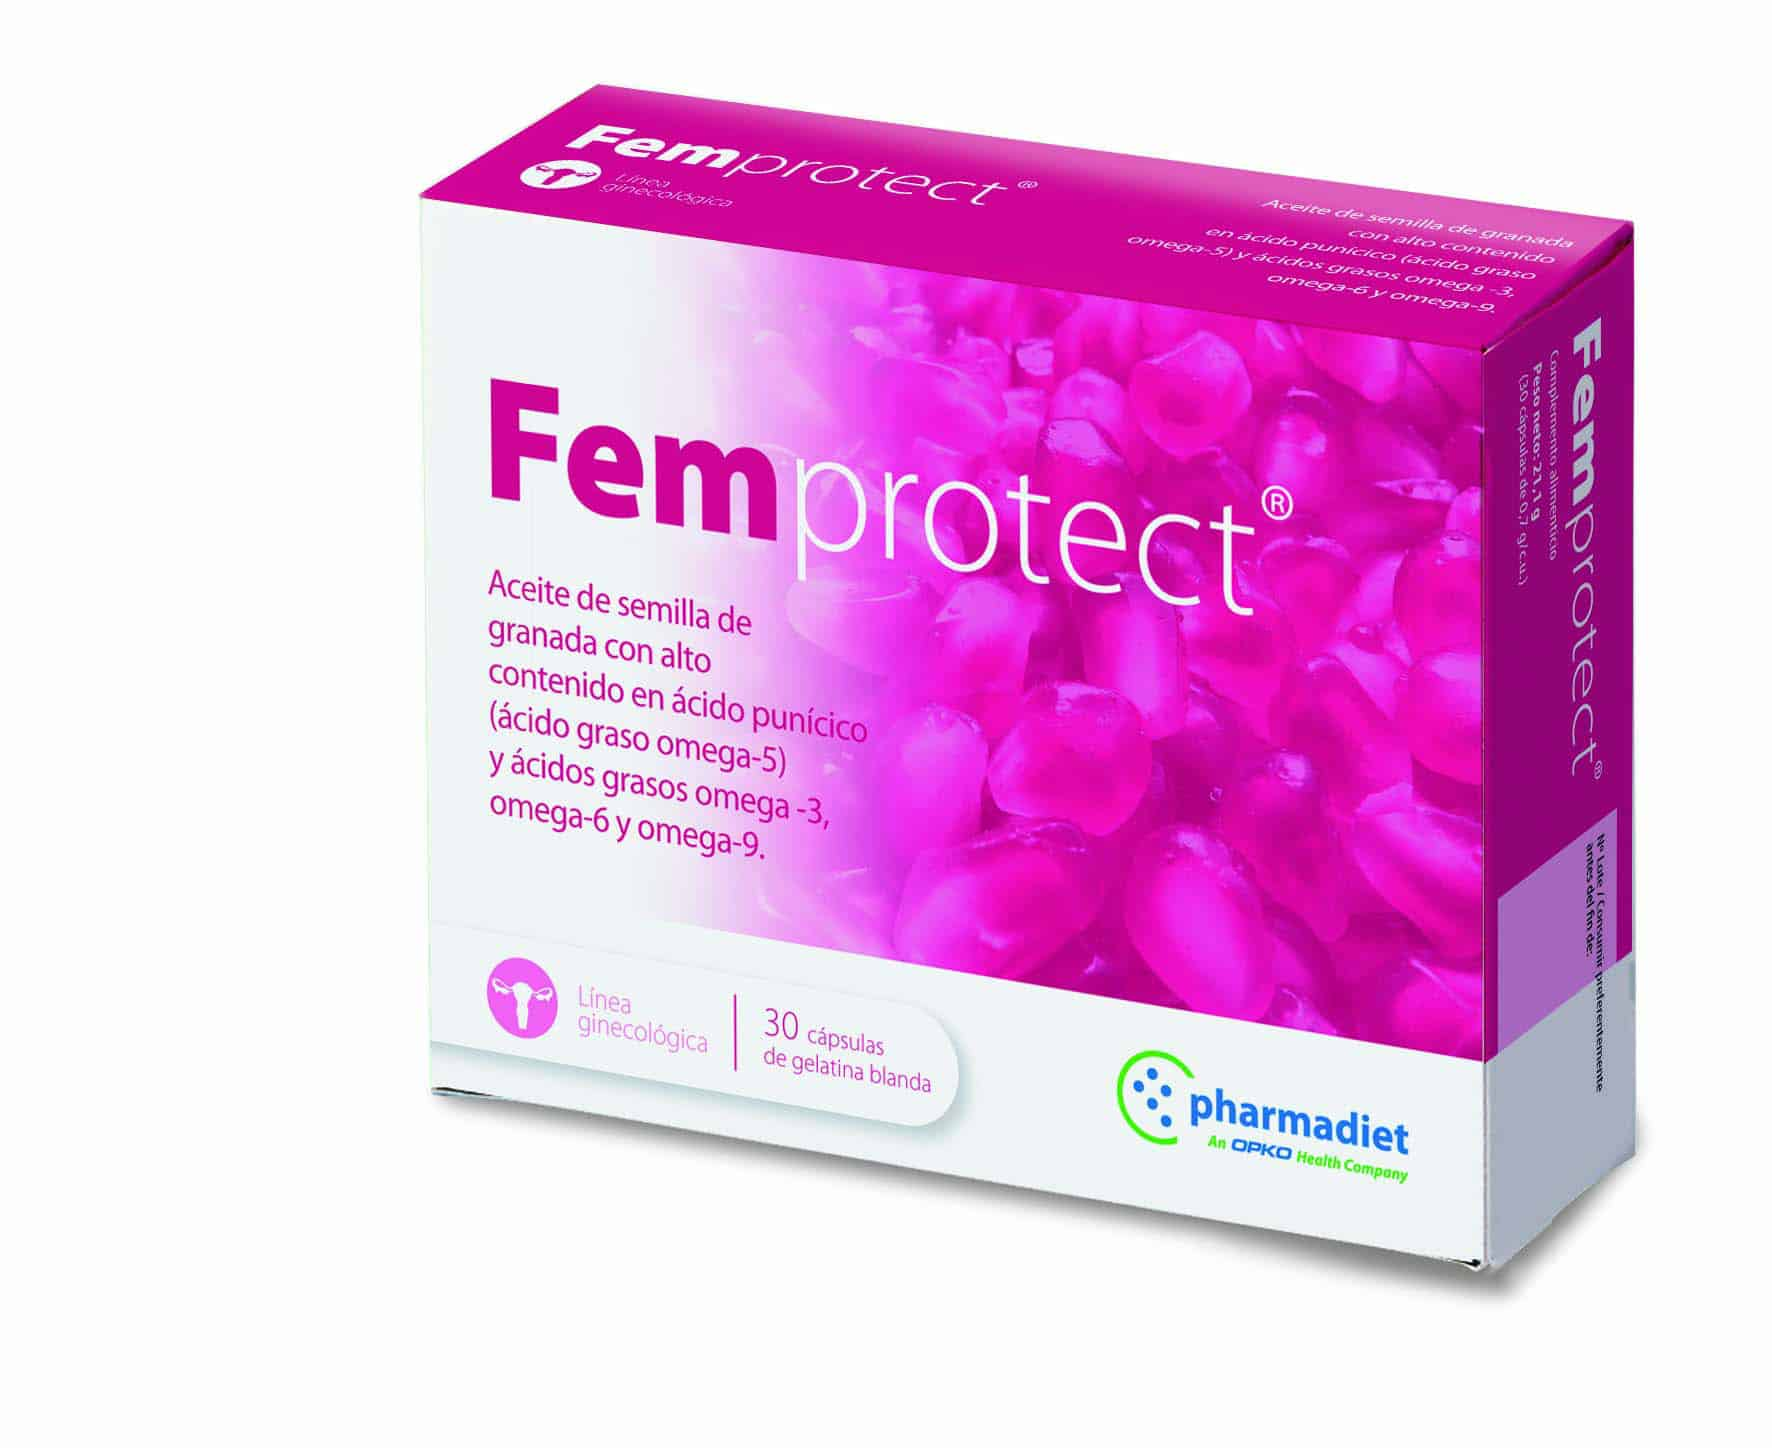 Femprotect